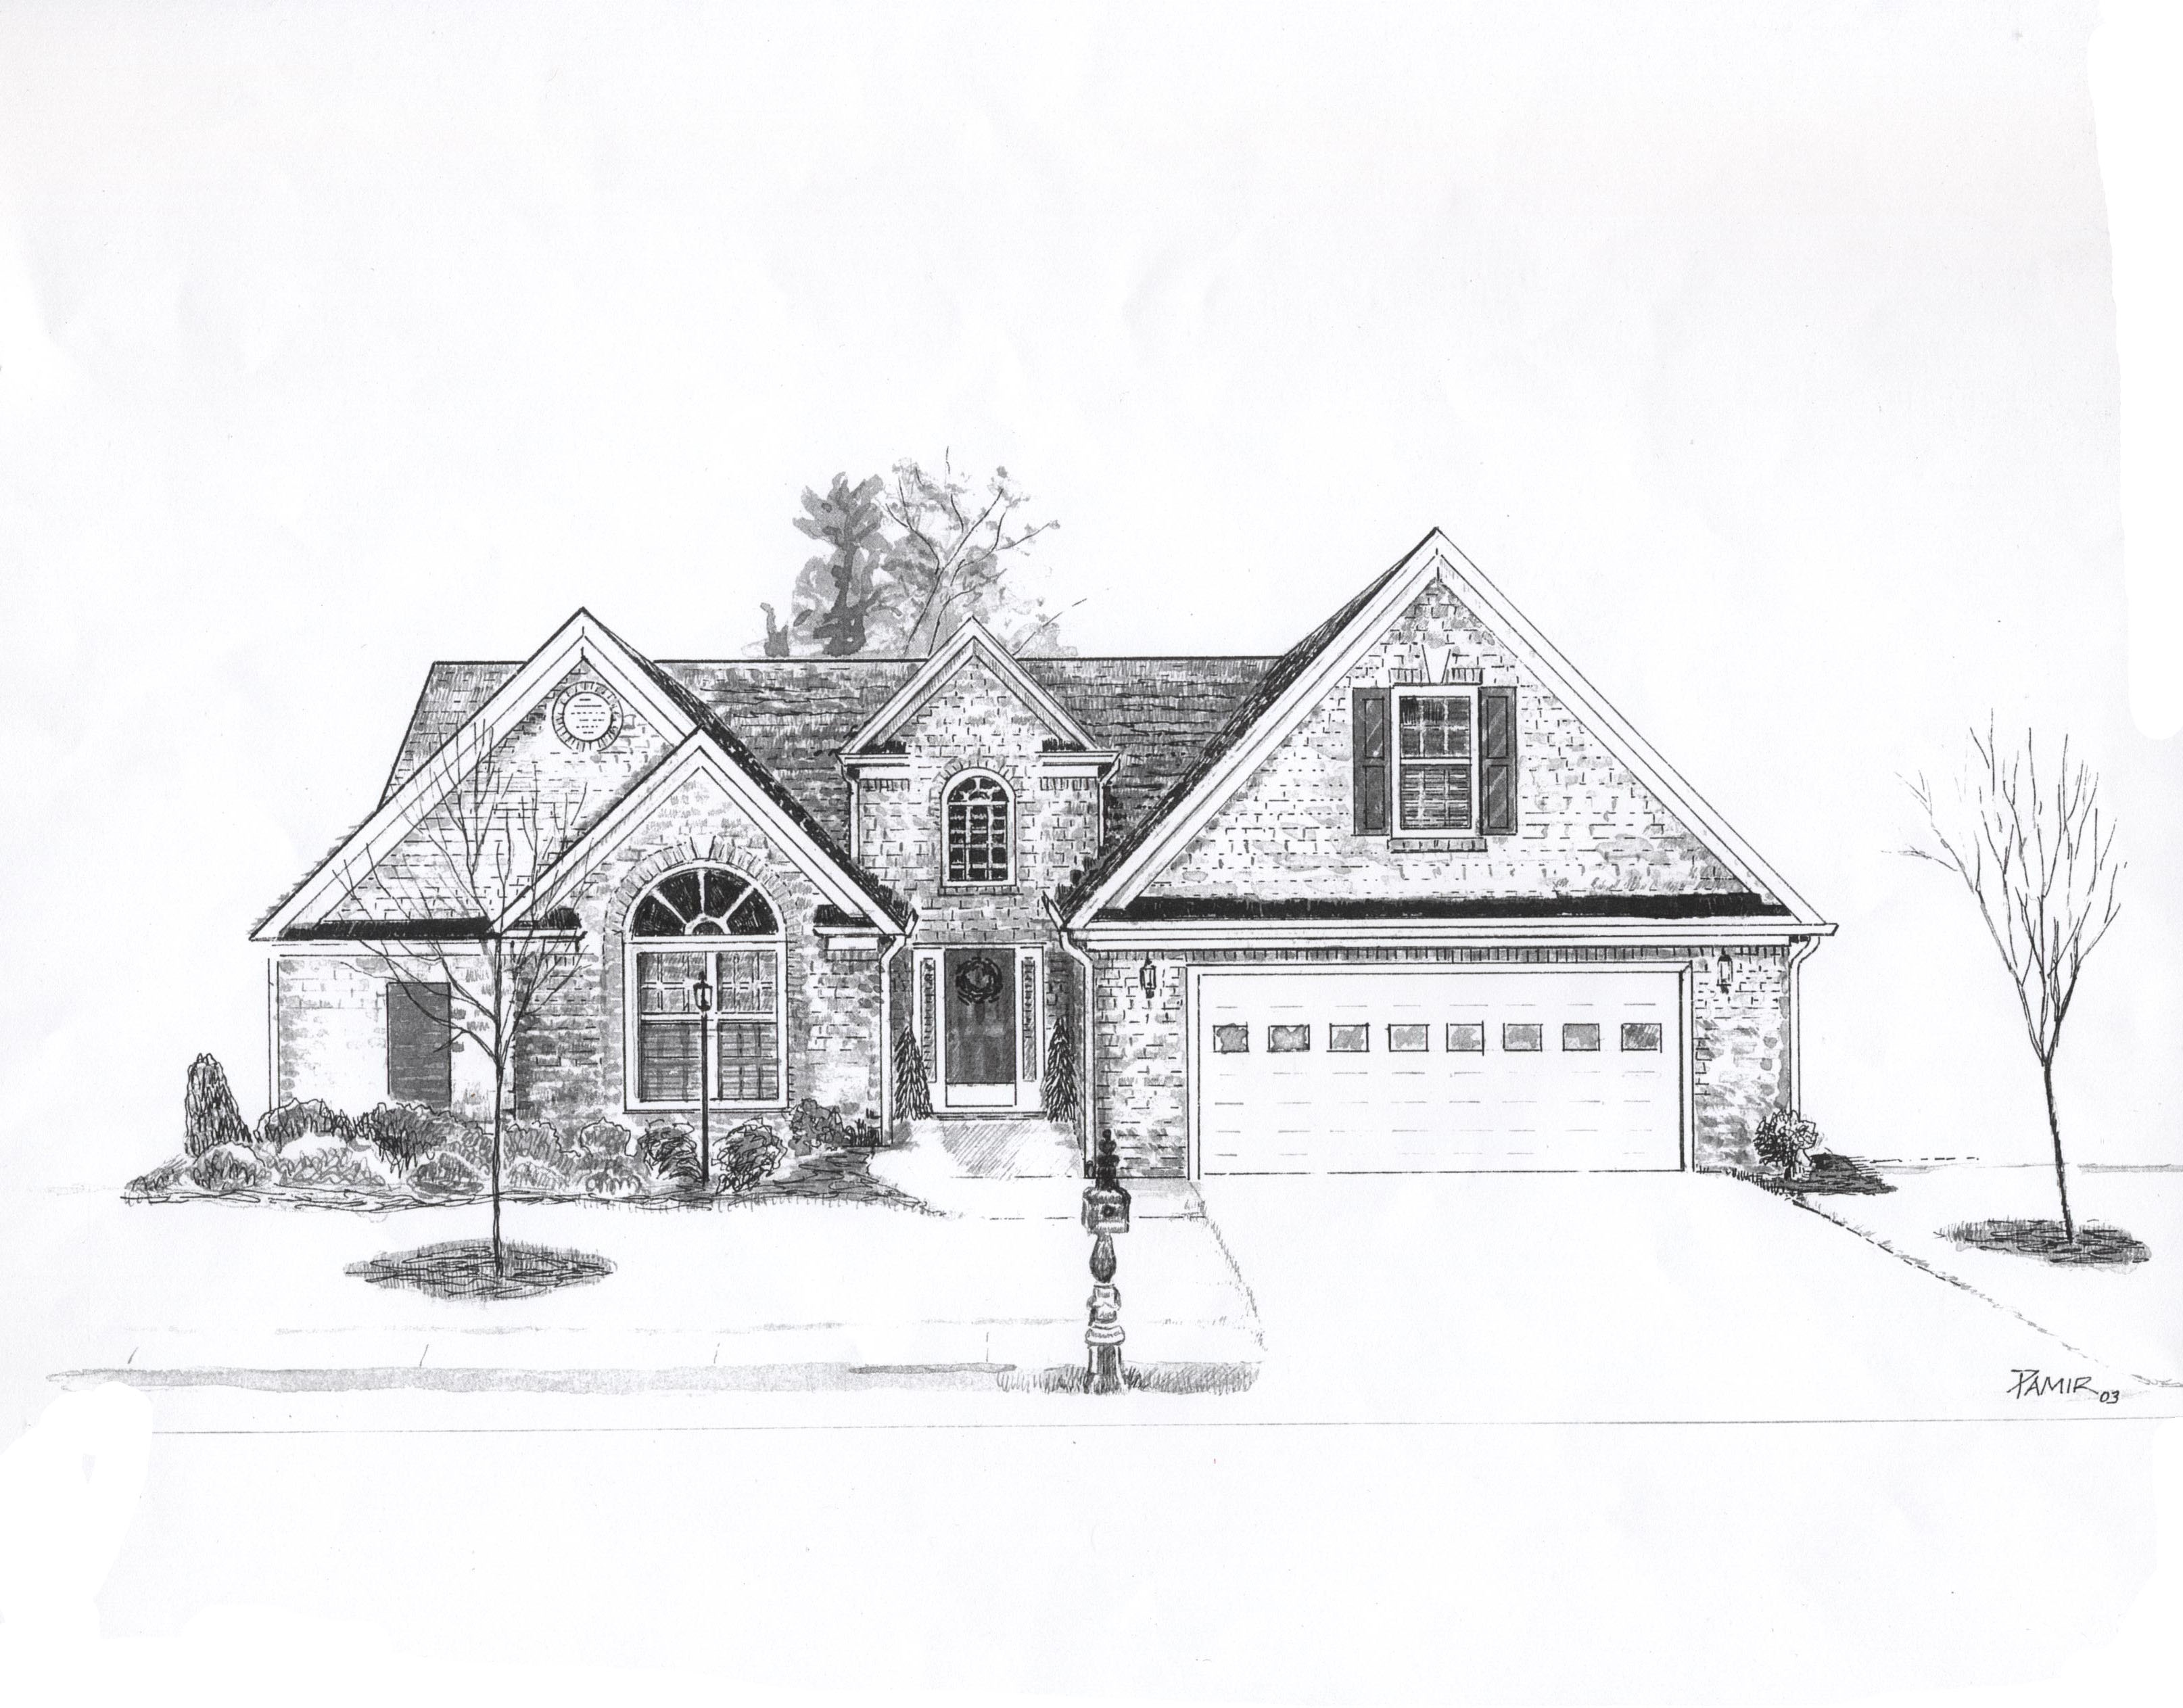 1000+ images about Architectural Drafting on Pinterest